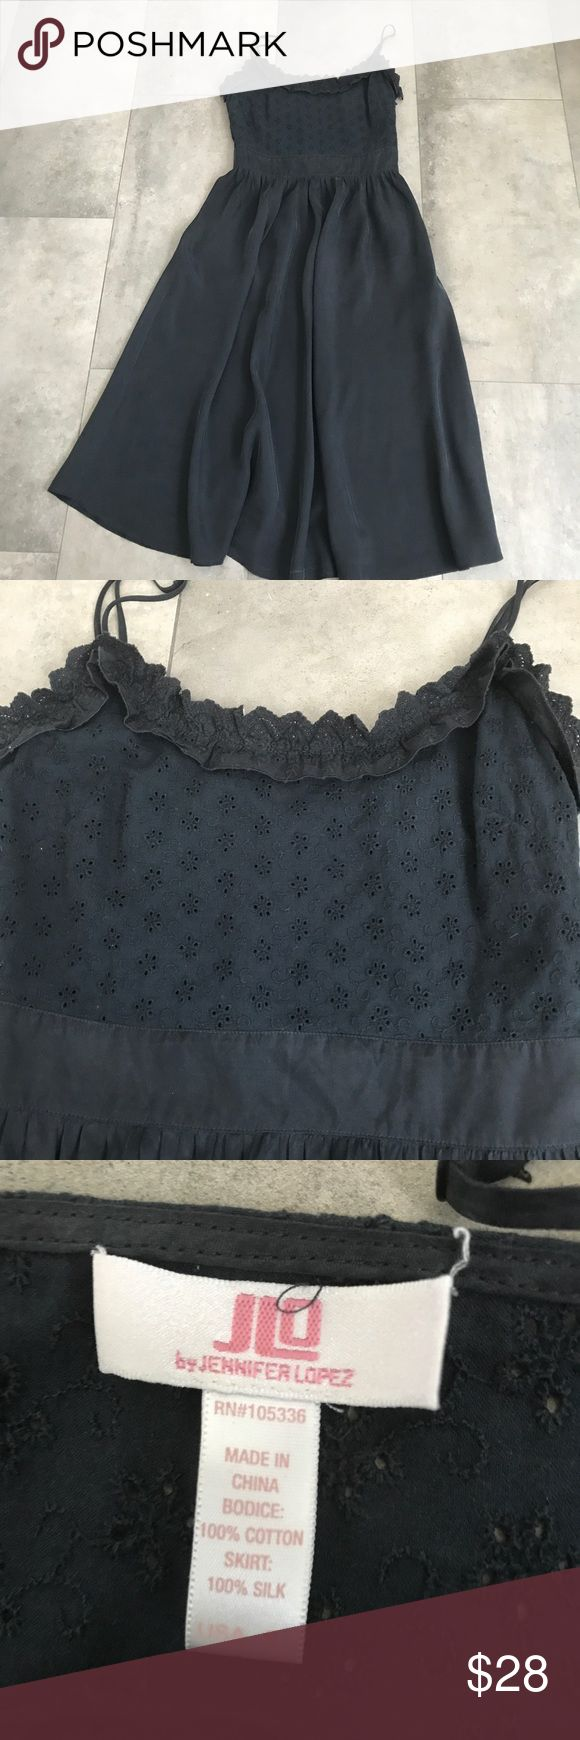 {jlo by Jennifer Lopez} black midi dress! Jlo by Jennifer Lopez black eyelet silk dress! Size small. Pre loved but in good condition! Adjustable straps. Bodice is 100% cotton, skirt part is 100% silk. Waist flat is 13.5 in, length from mid back is 40 in. Bundle and save! Jennifer Lopez Dresses Midi